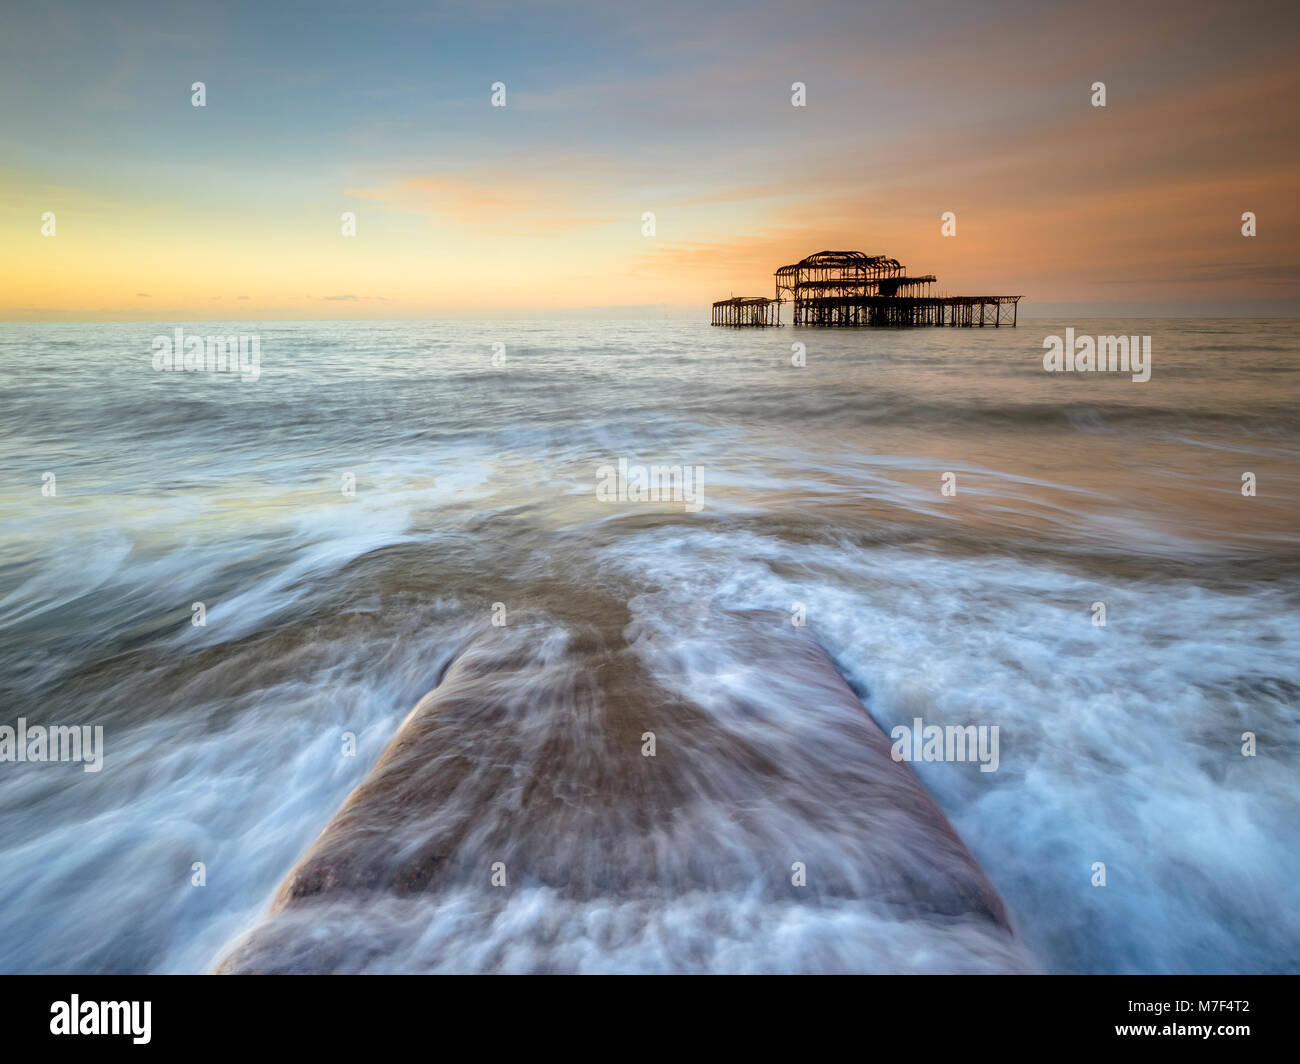 Water rushing over a stone jetty at the old Pier, Brighton. - Stock Image